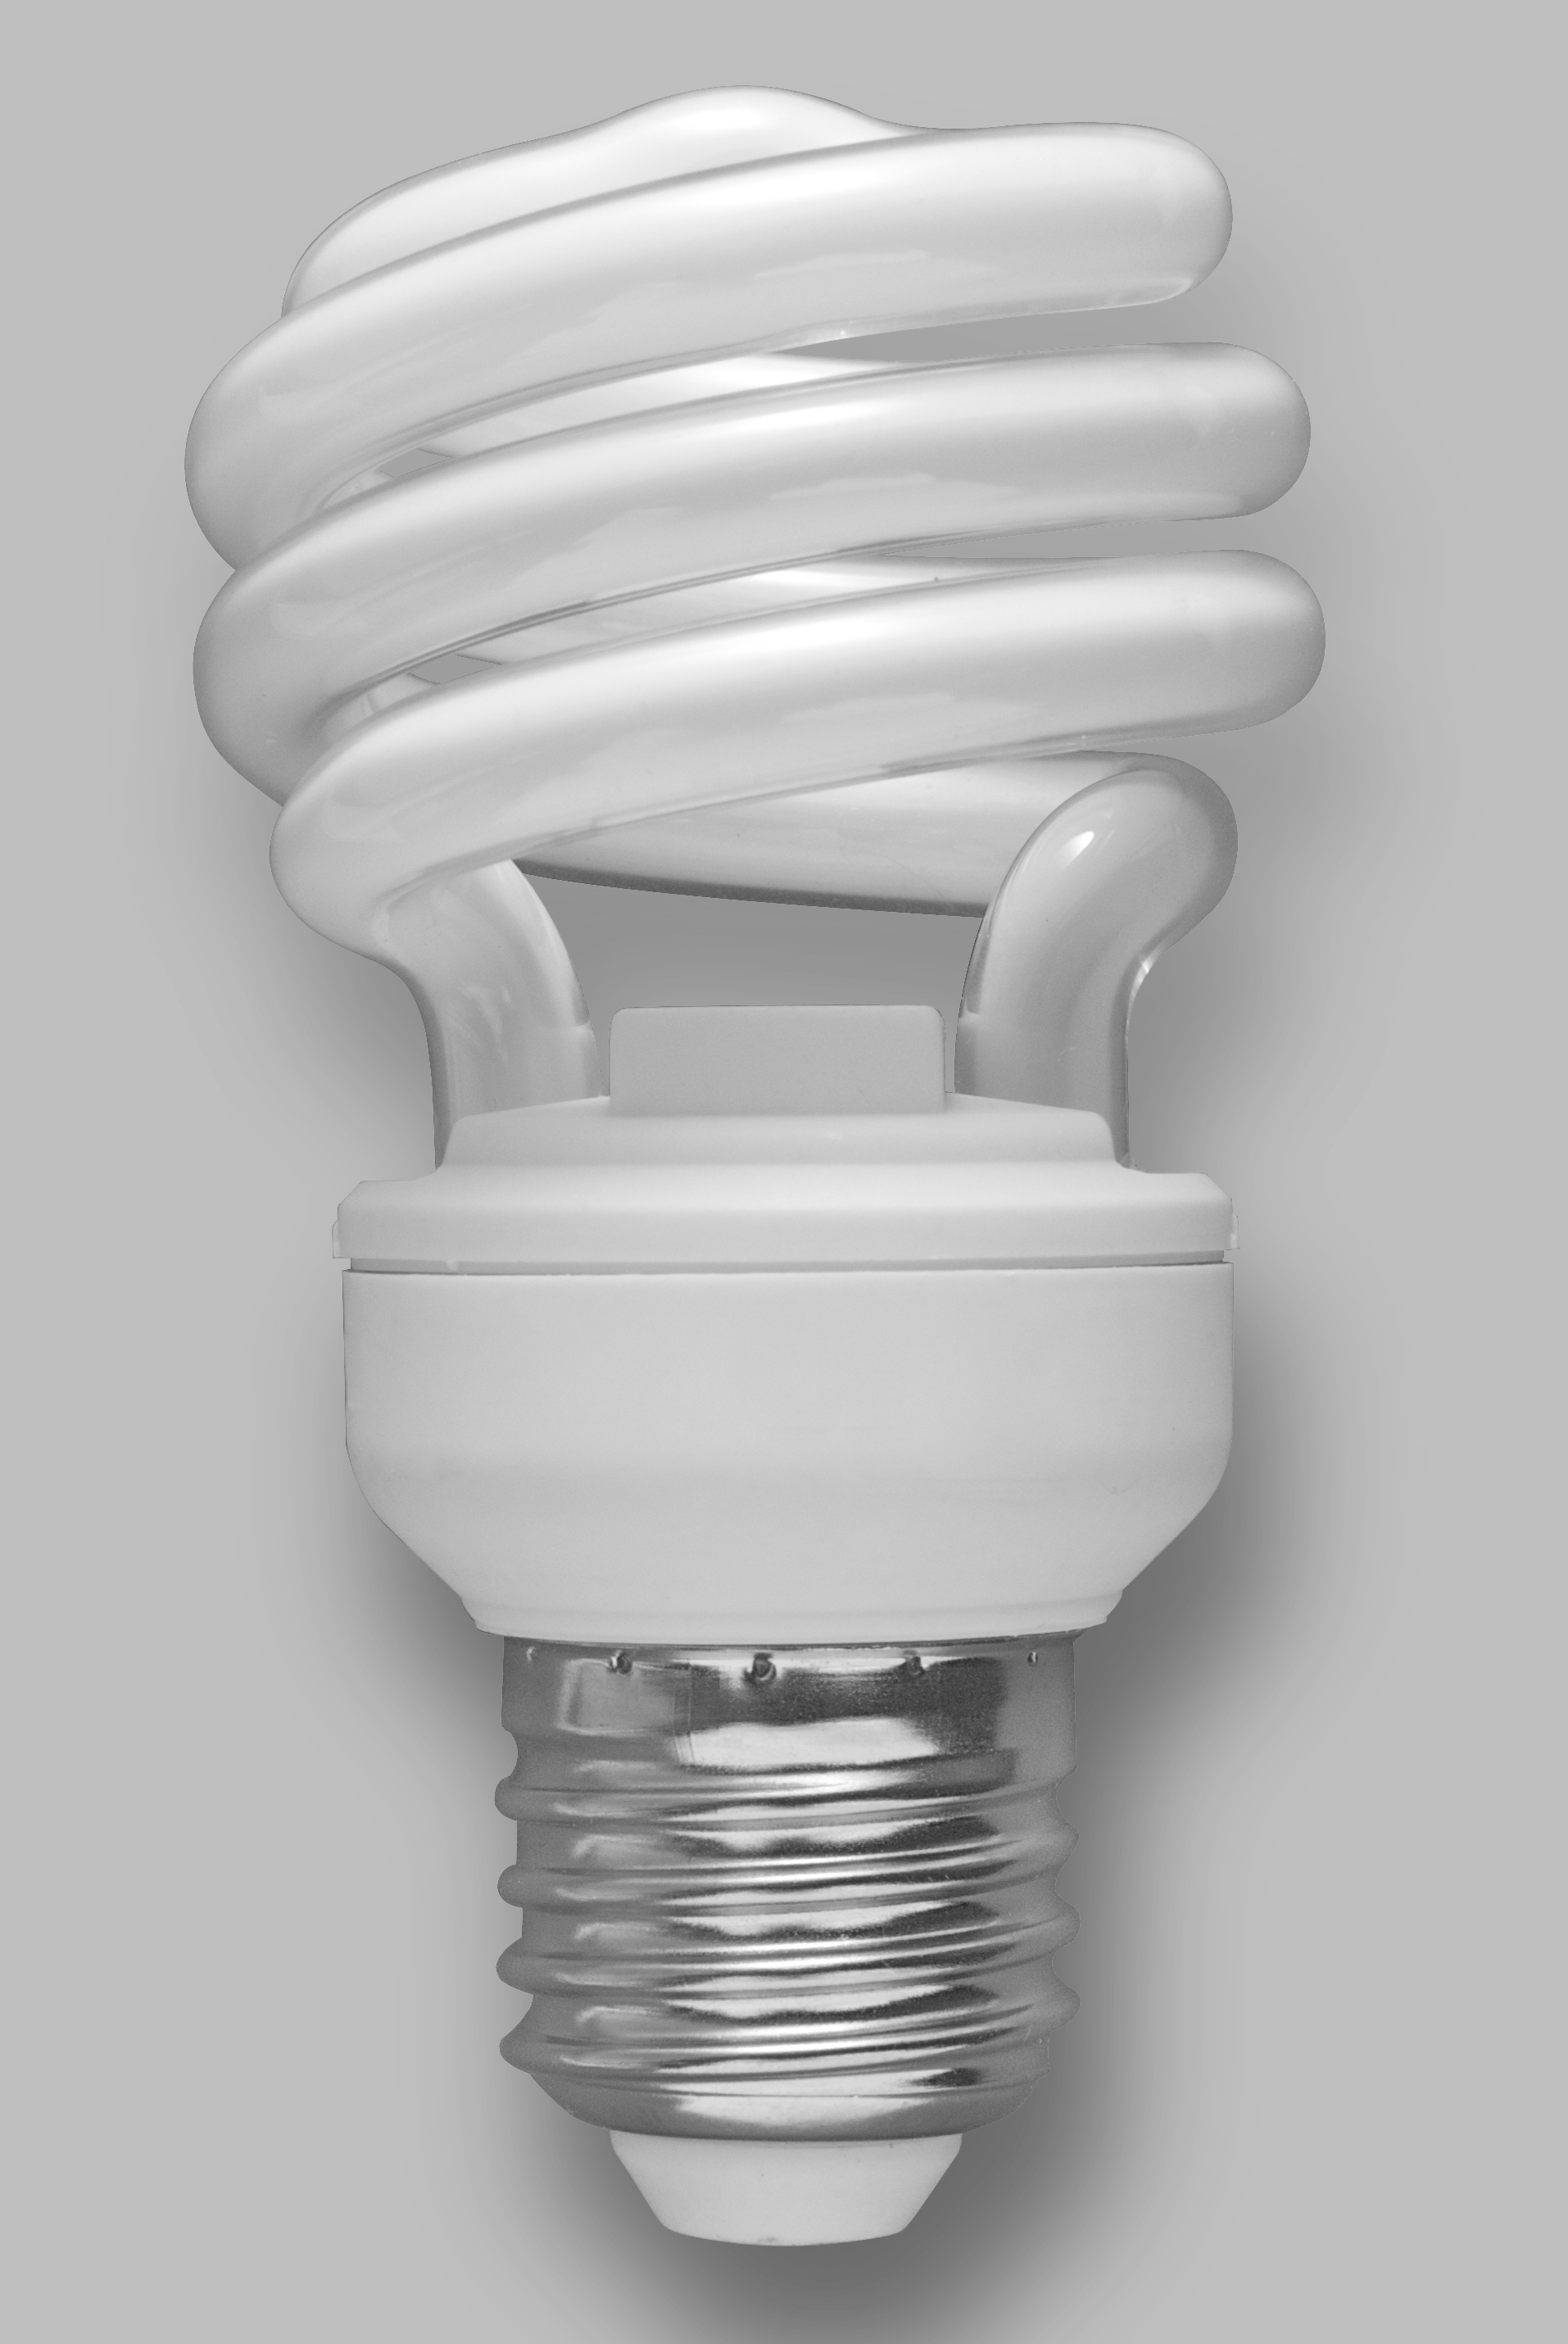 why wirebiters lights do light lighting wifi bulbs my up signal cfls cfl mess fluorescent hires